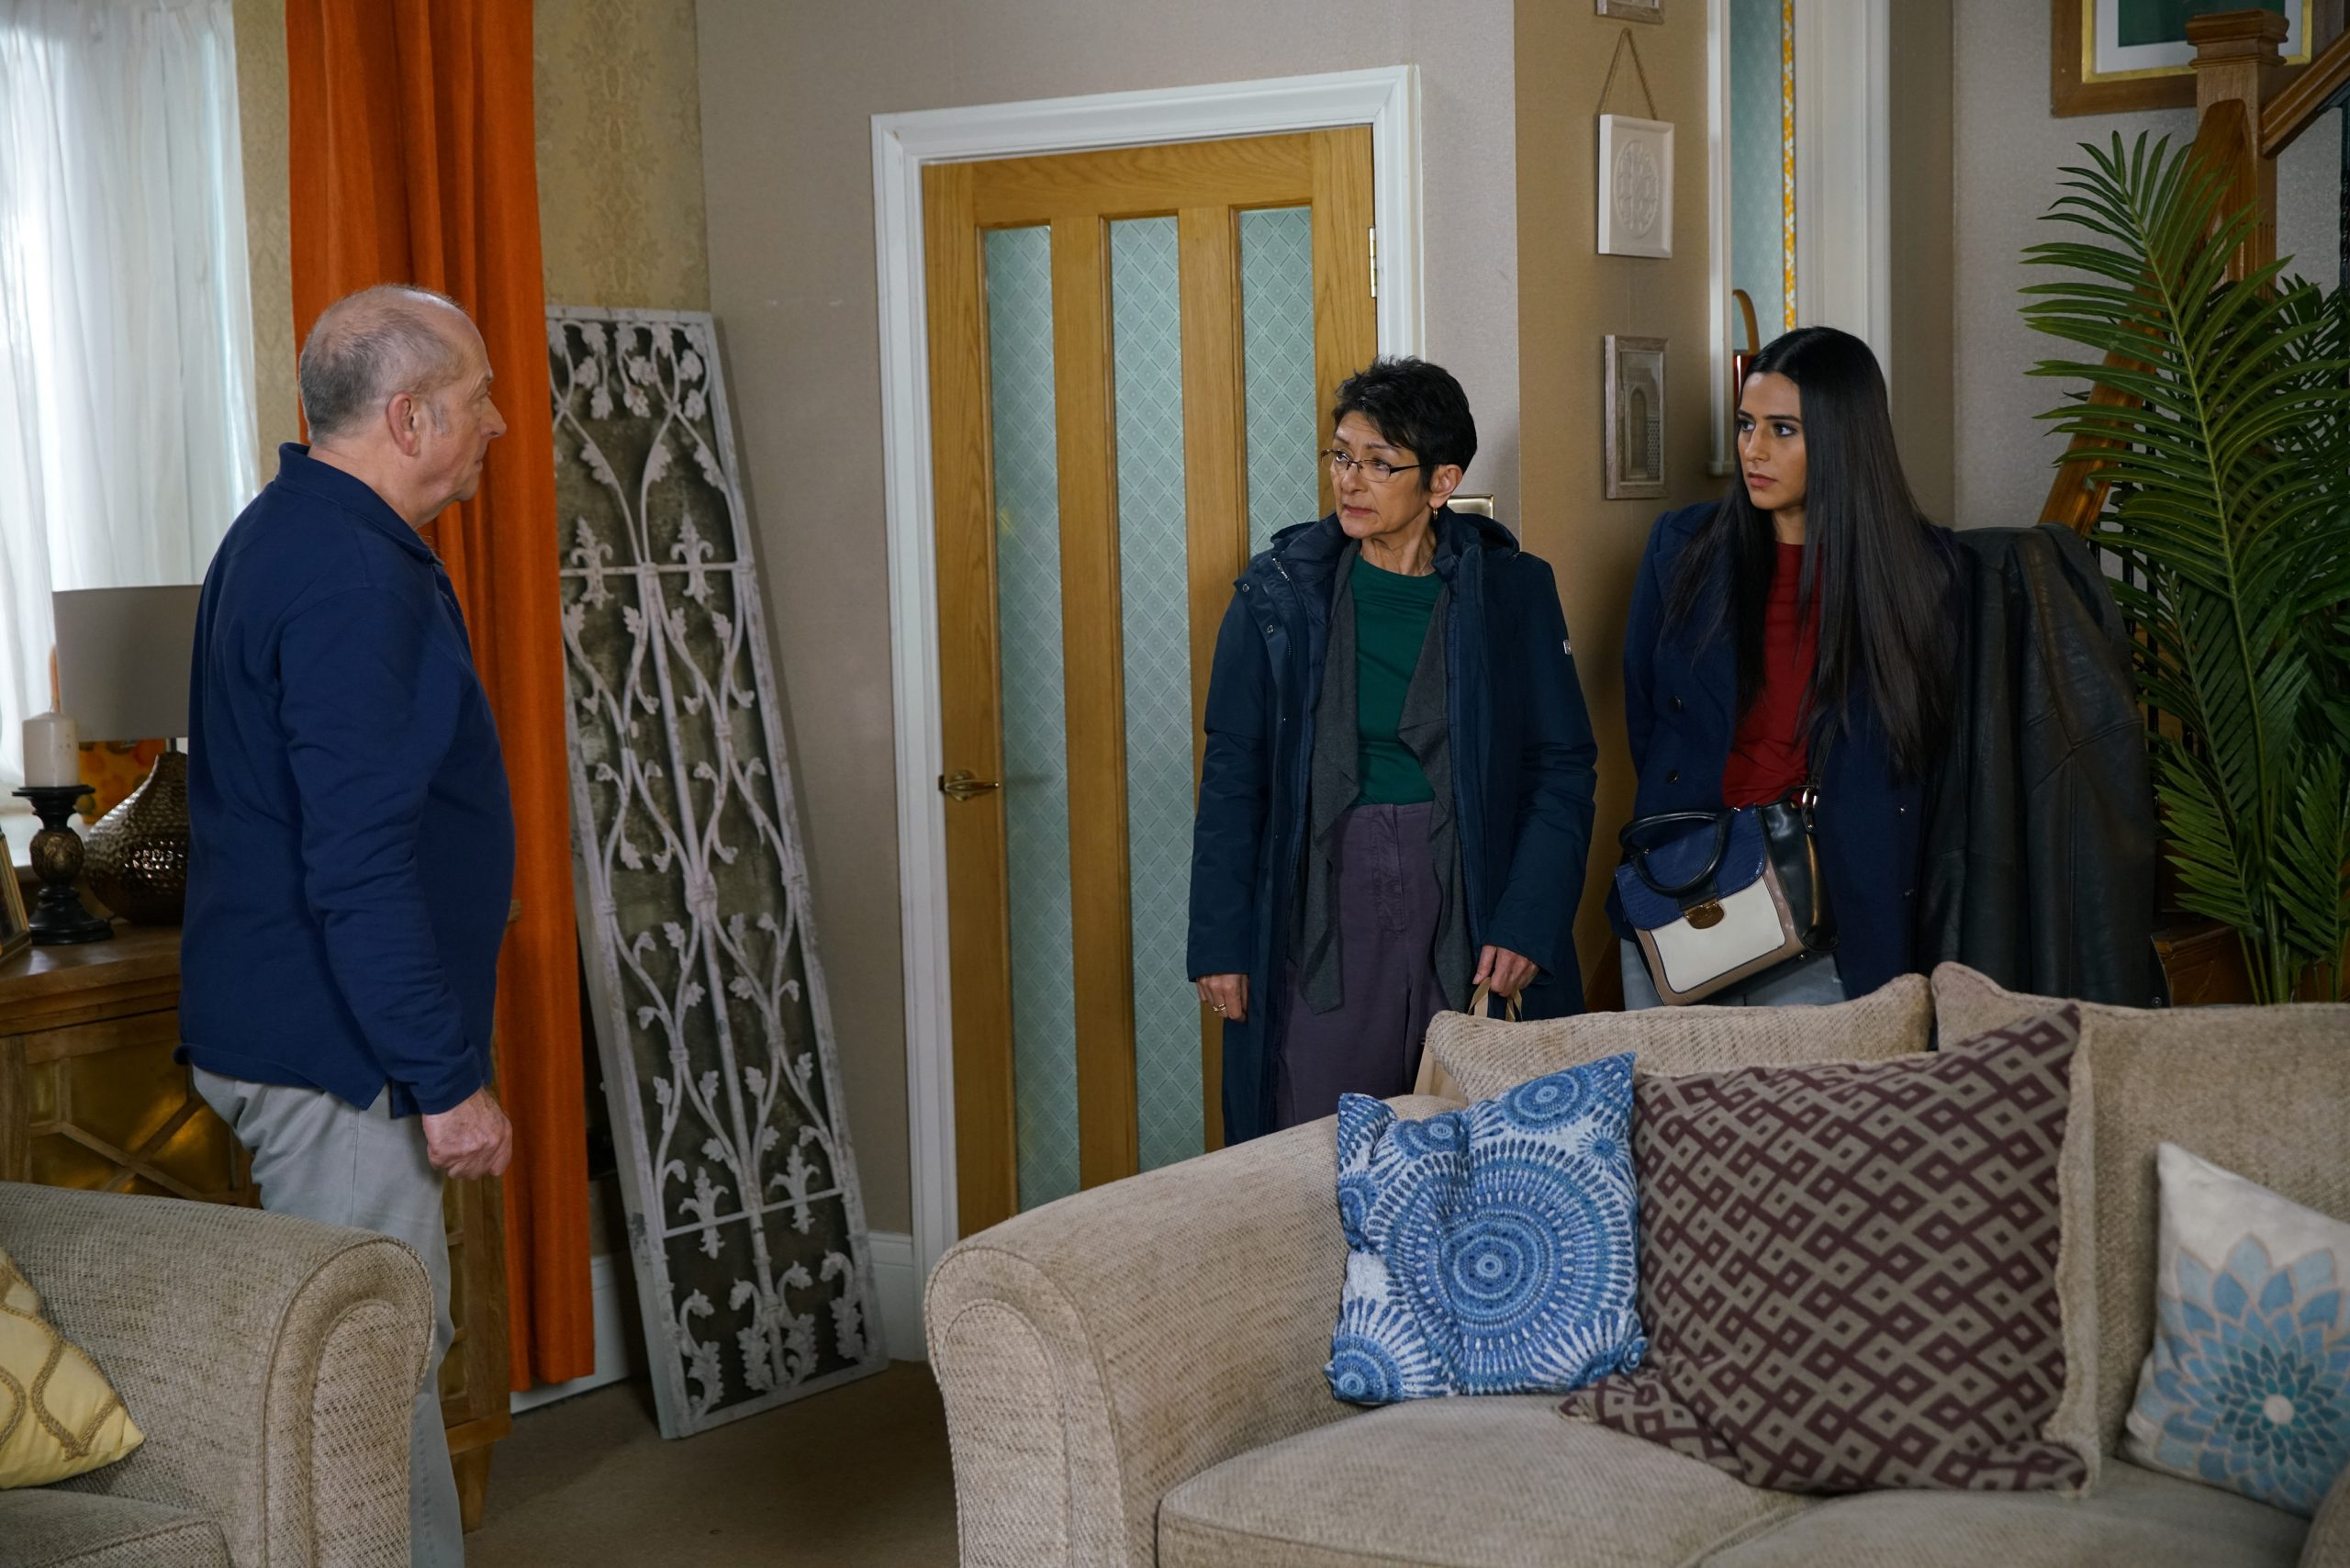 Coronation Street SPOILERS: Yasmeen makes an awful discovery tonight!